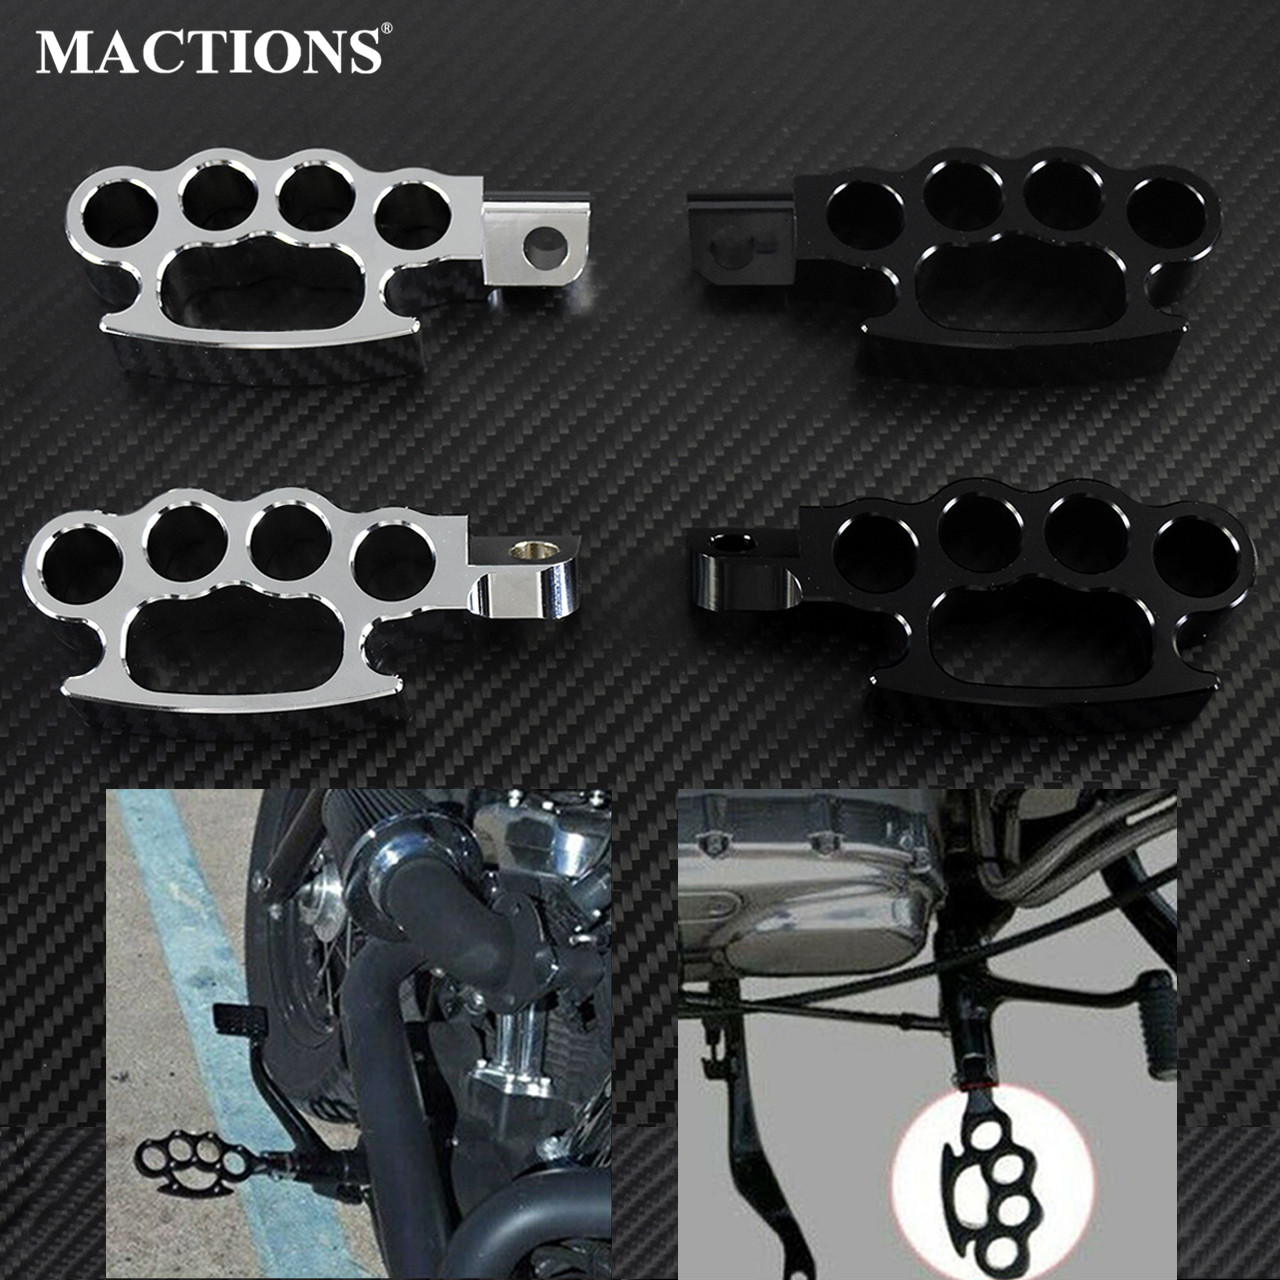 Motorcycle Flying Knuckle Footpegs Footrests Custom Pedal Control Foot Peg For Harley Sportster XL 883 1200 V-Rod Dyna Softail